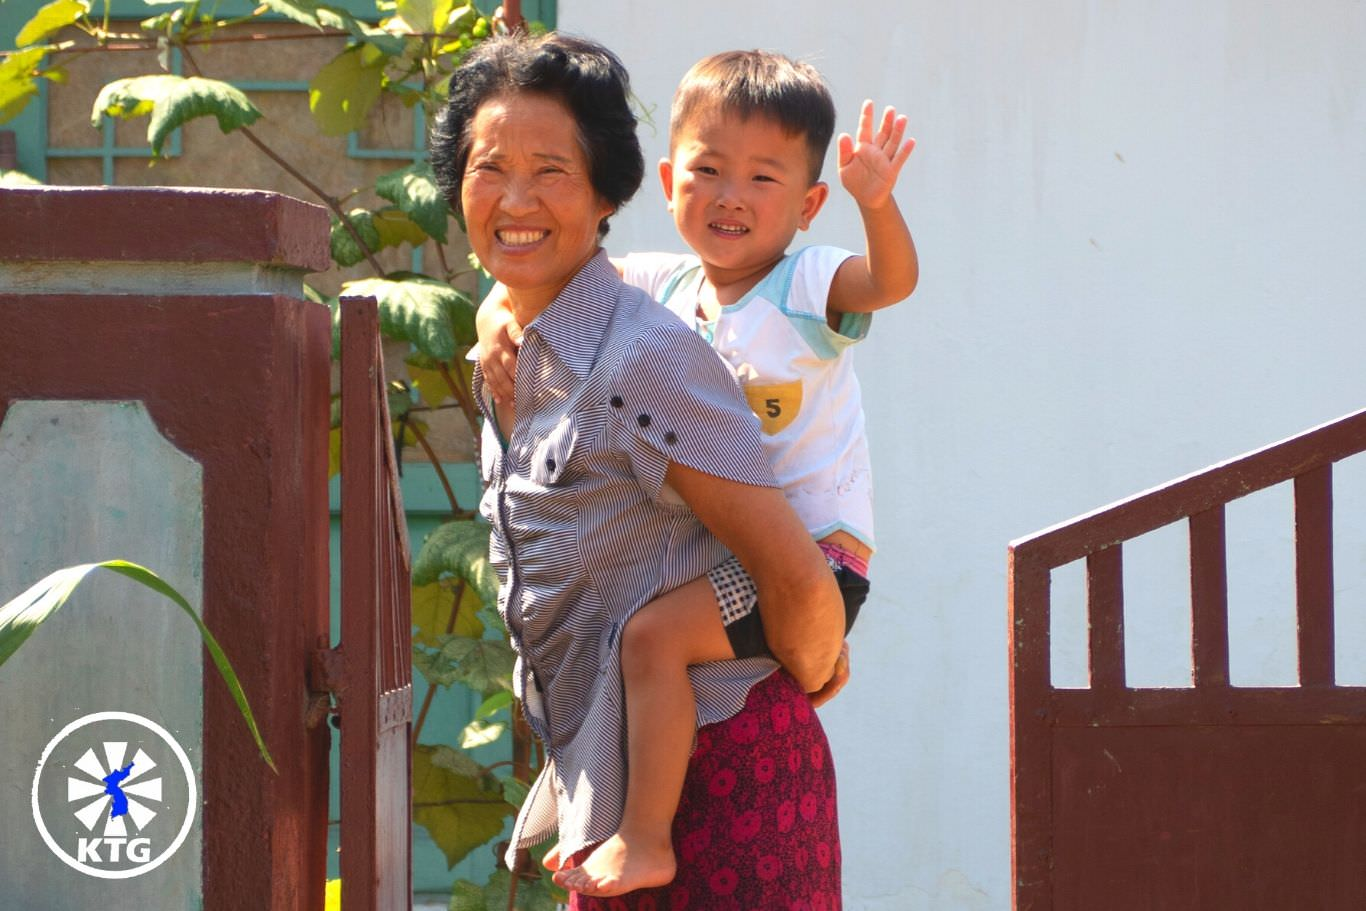 Grandmother and grandson in a cooperative farm near Nampo city in North Korea. Trip arranged by KTG Tours